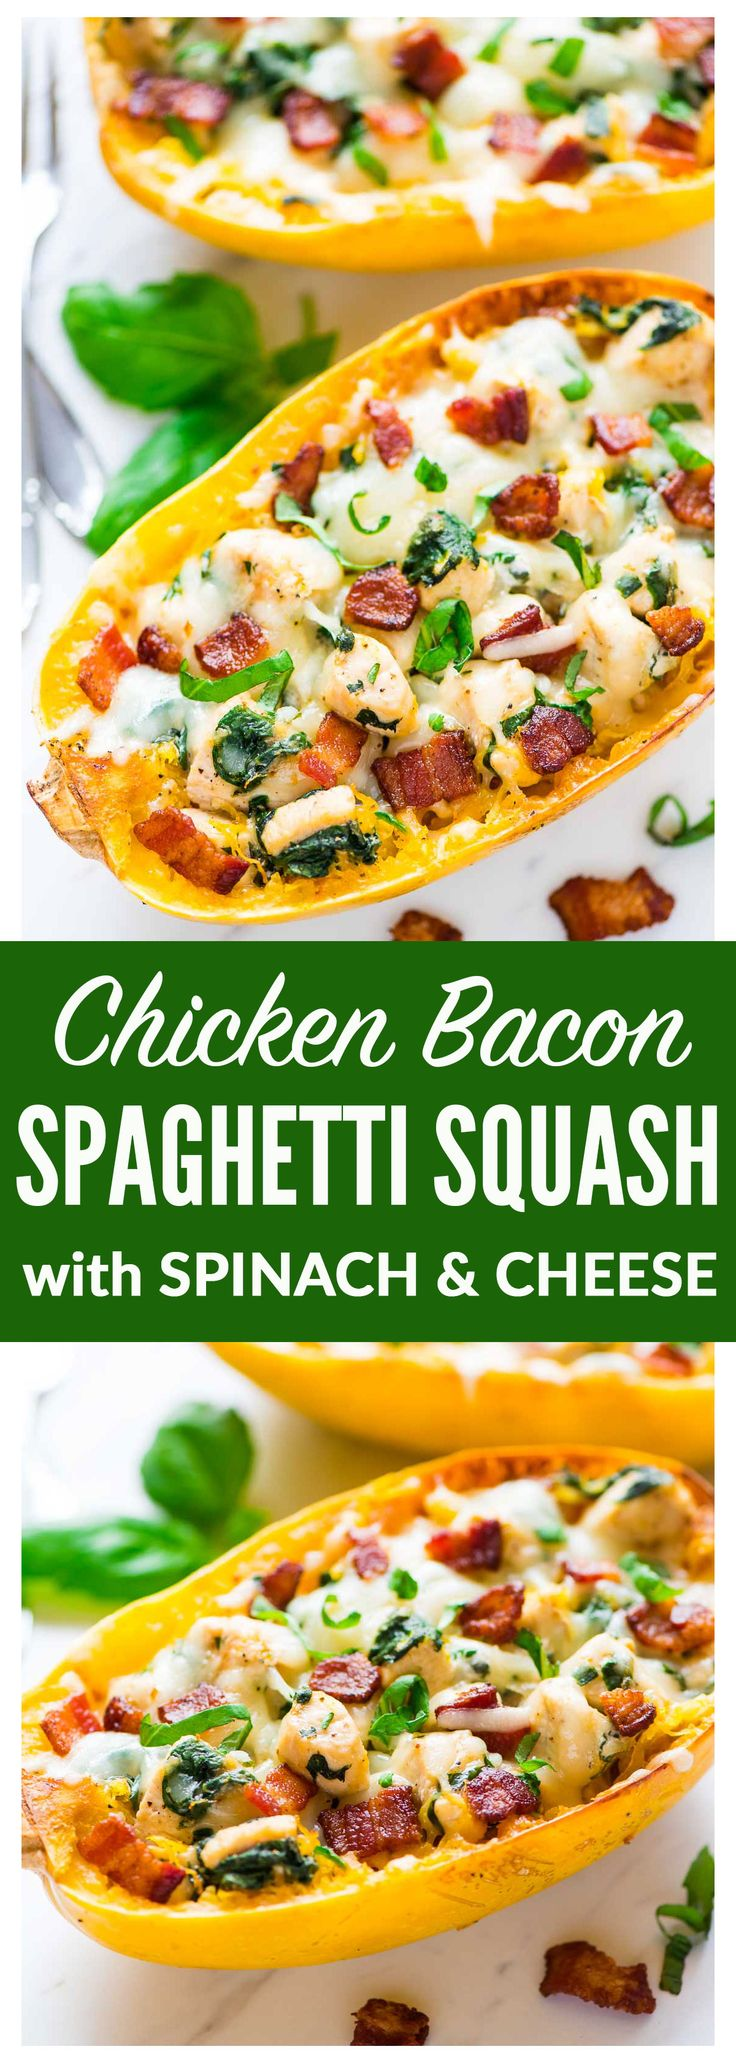 Spaghetti Squash Boats with Chicken, Bacon, Spinach, and Cheese. A healthy, low carb meal that tastes like chicken alfredo! Easy, gluten free, and absolutely delicious. Recipe at wellplated.com | @wellplated